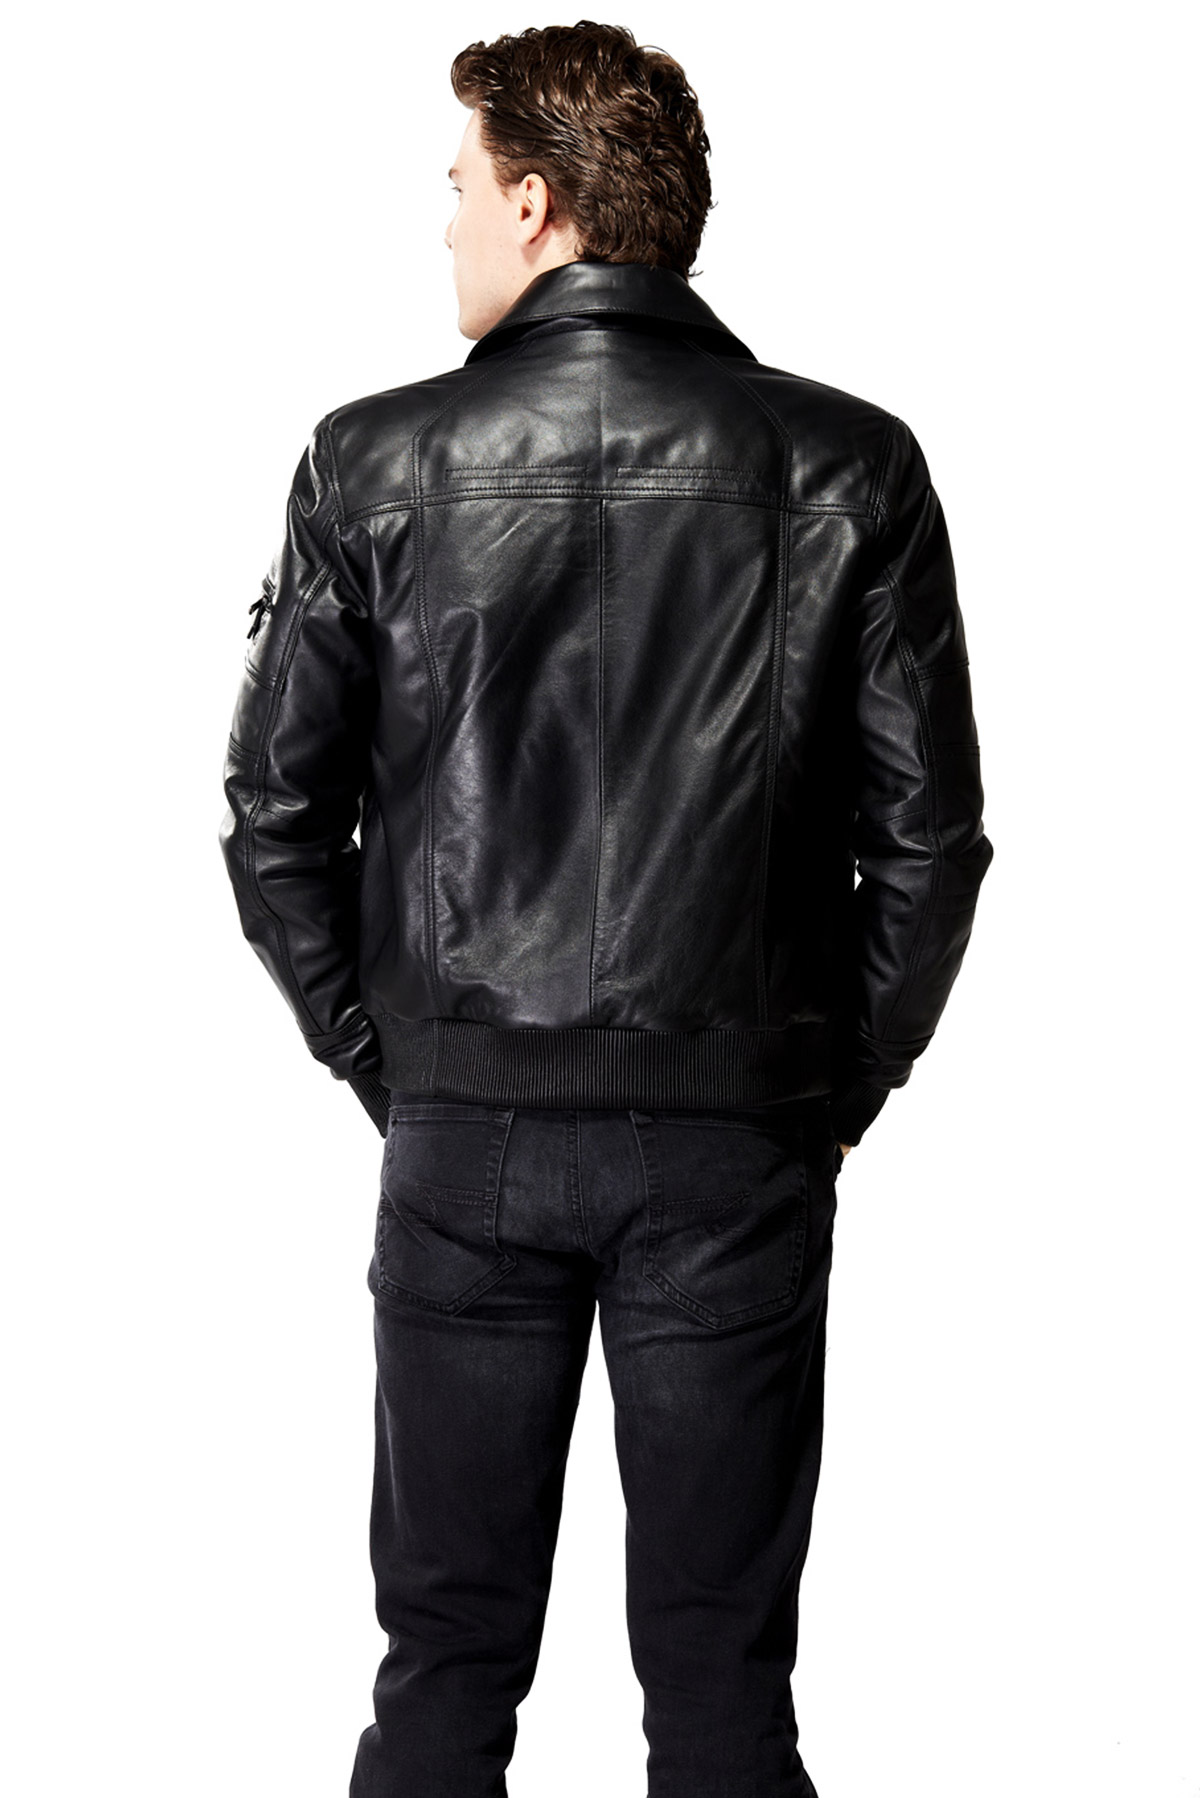 real leather jacket made in england